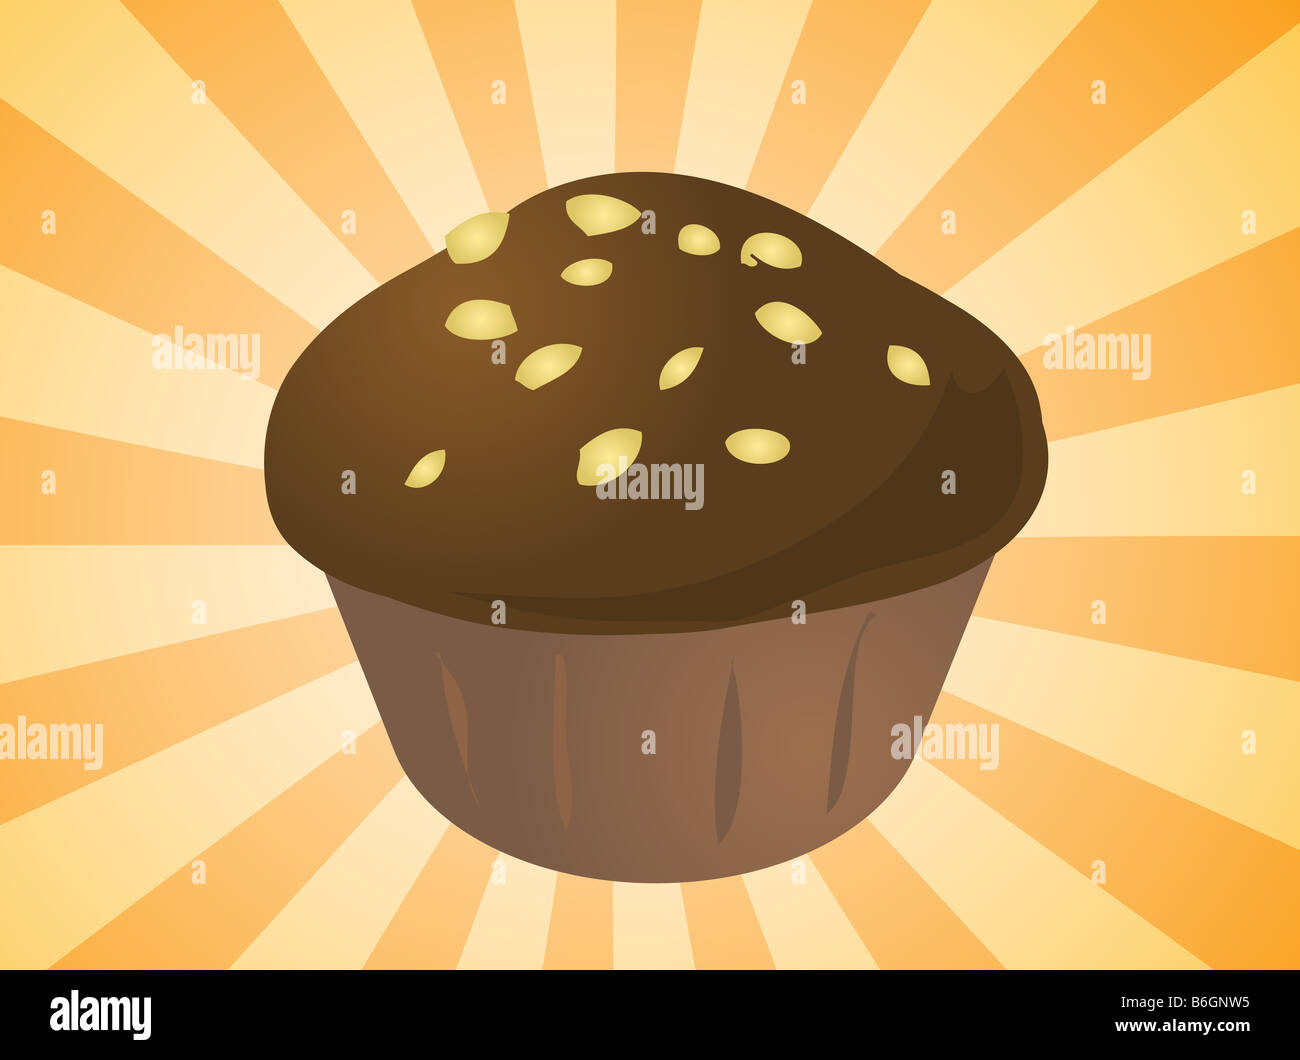 Fancy decorated cupcake muffin illustration clip art - Stock Image